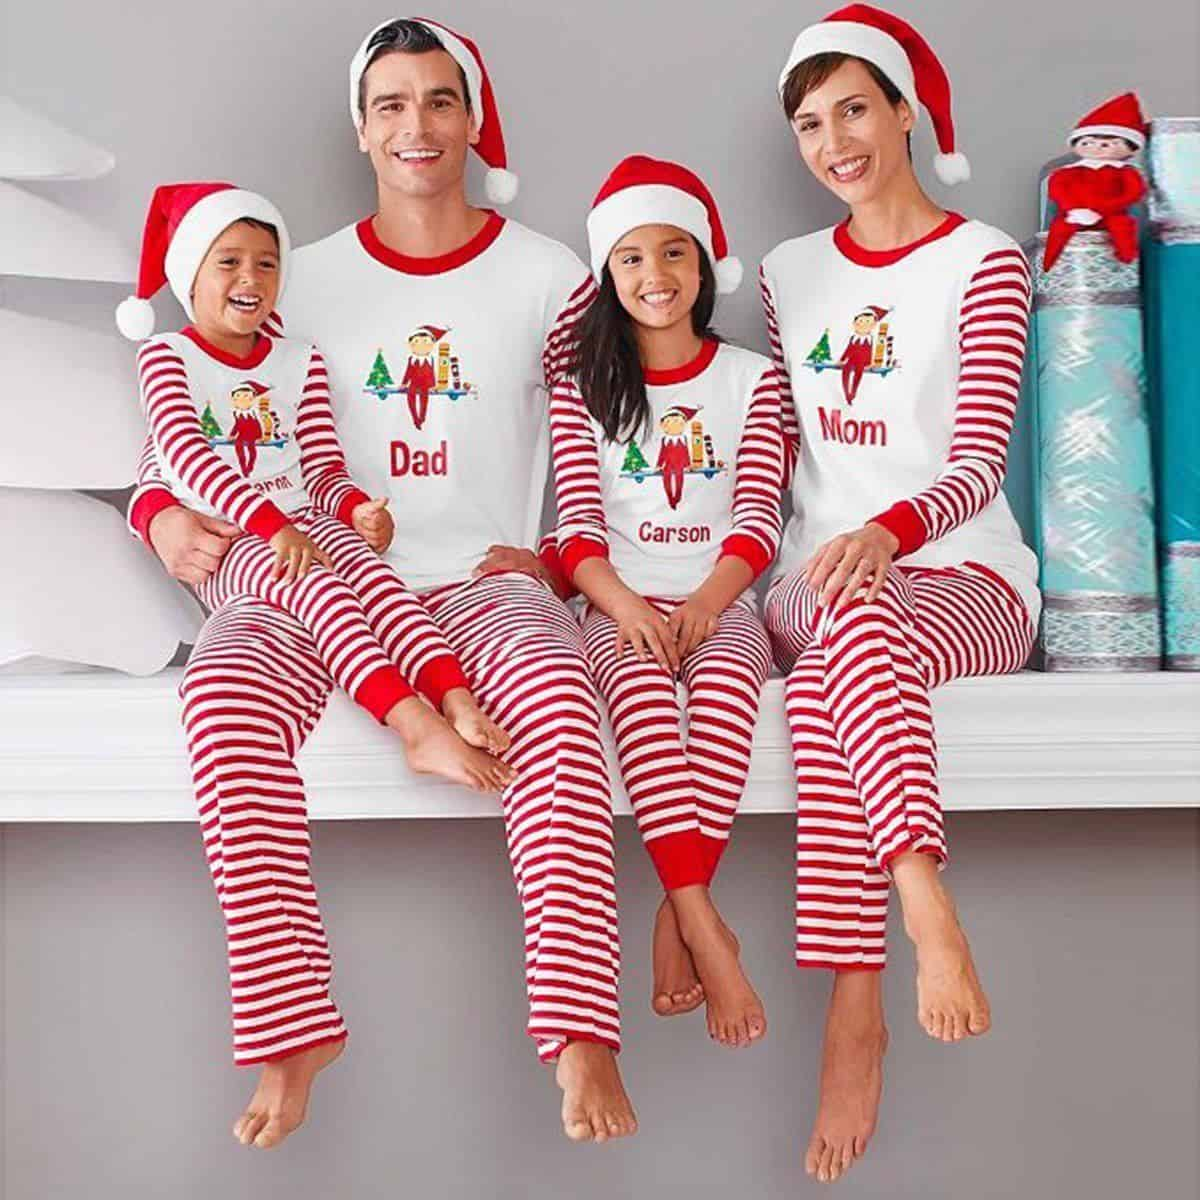 532a278e9d8c 15 of the Best Matching Family Christmas Pajamas - DIY Candy